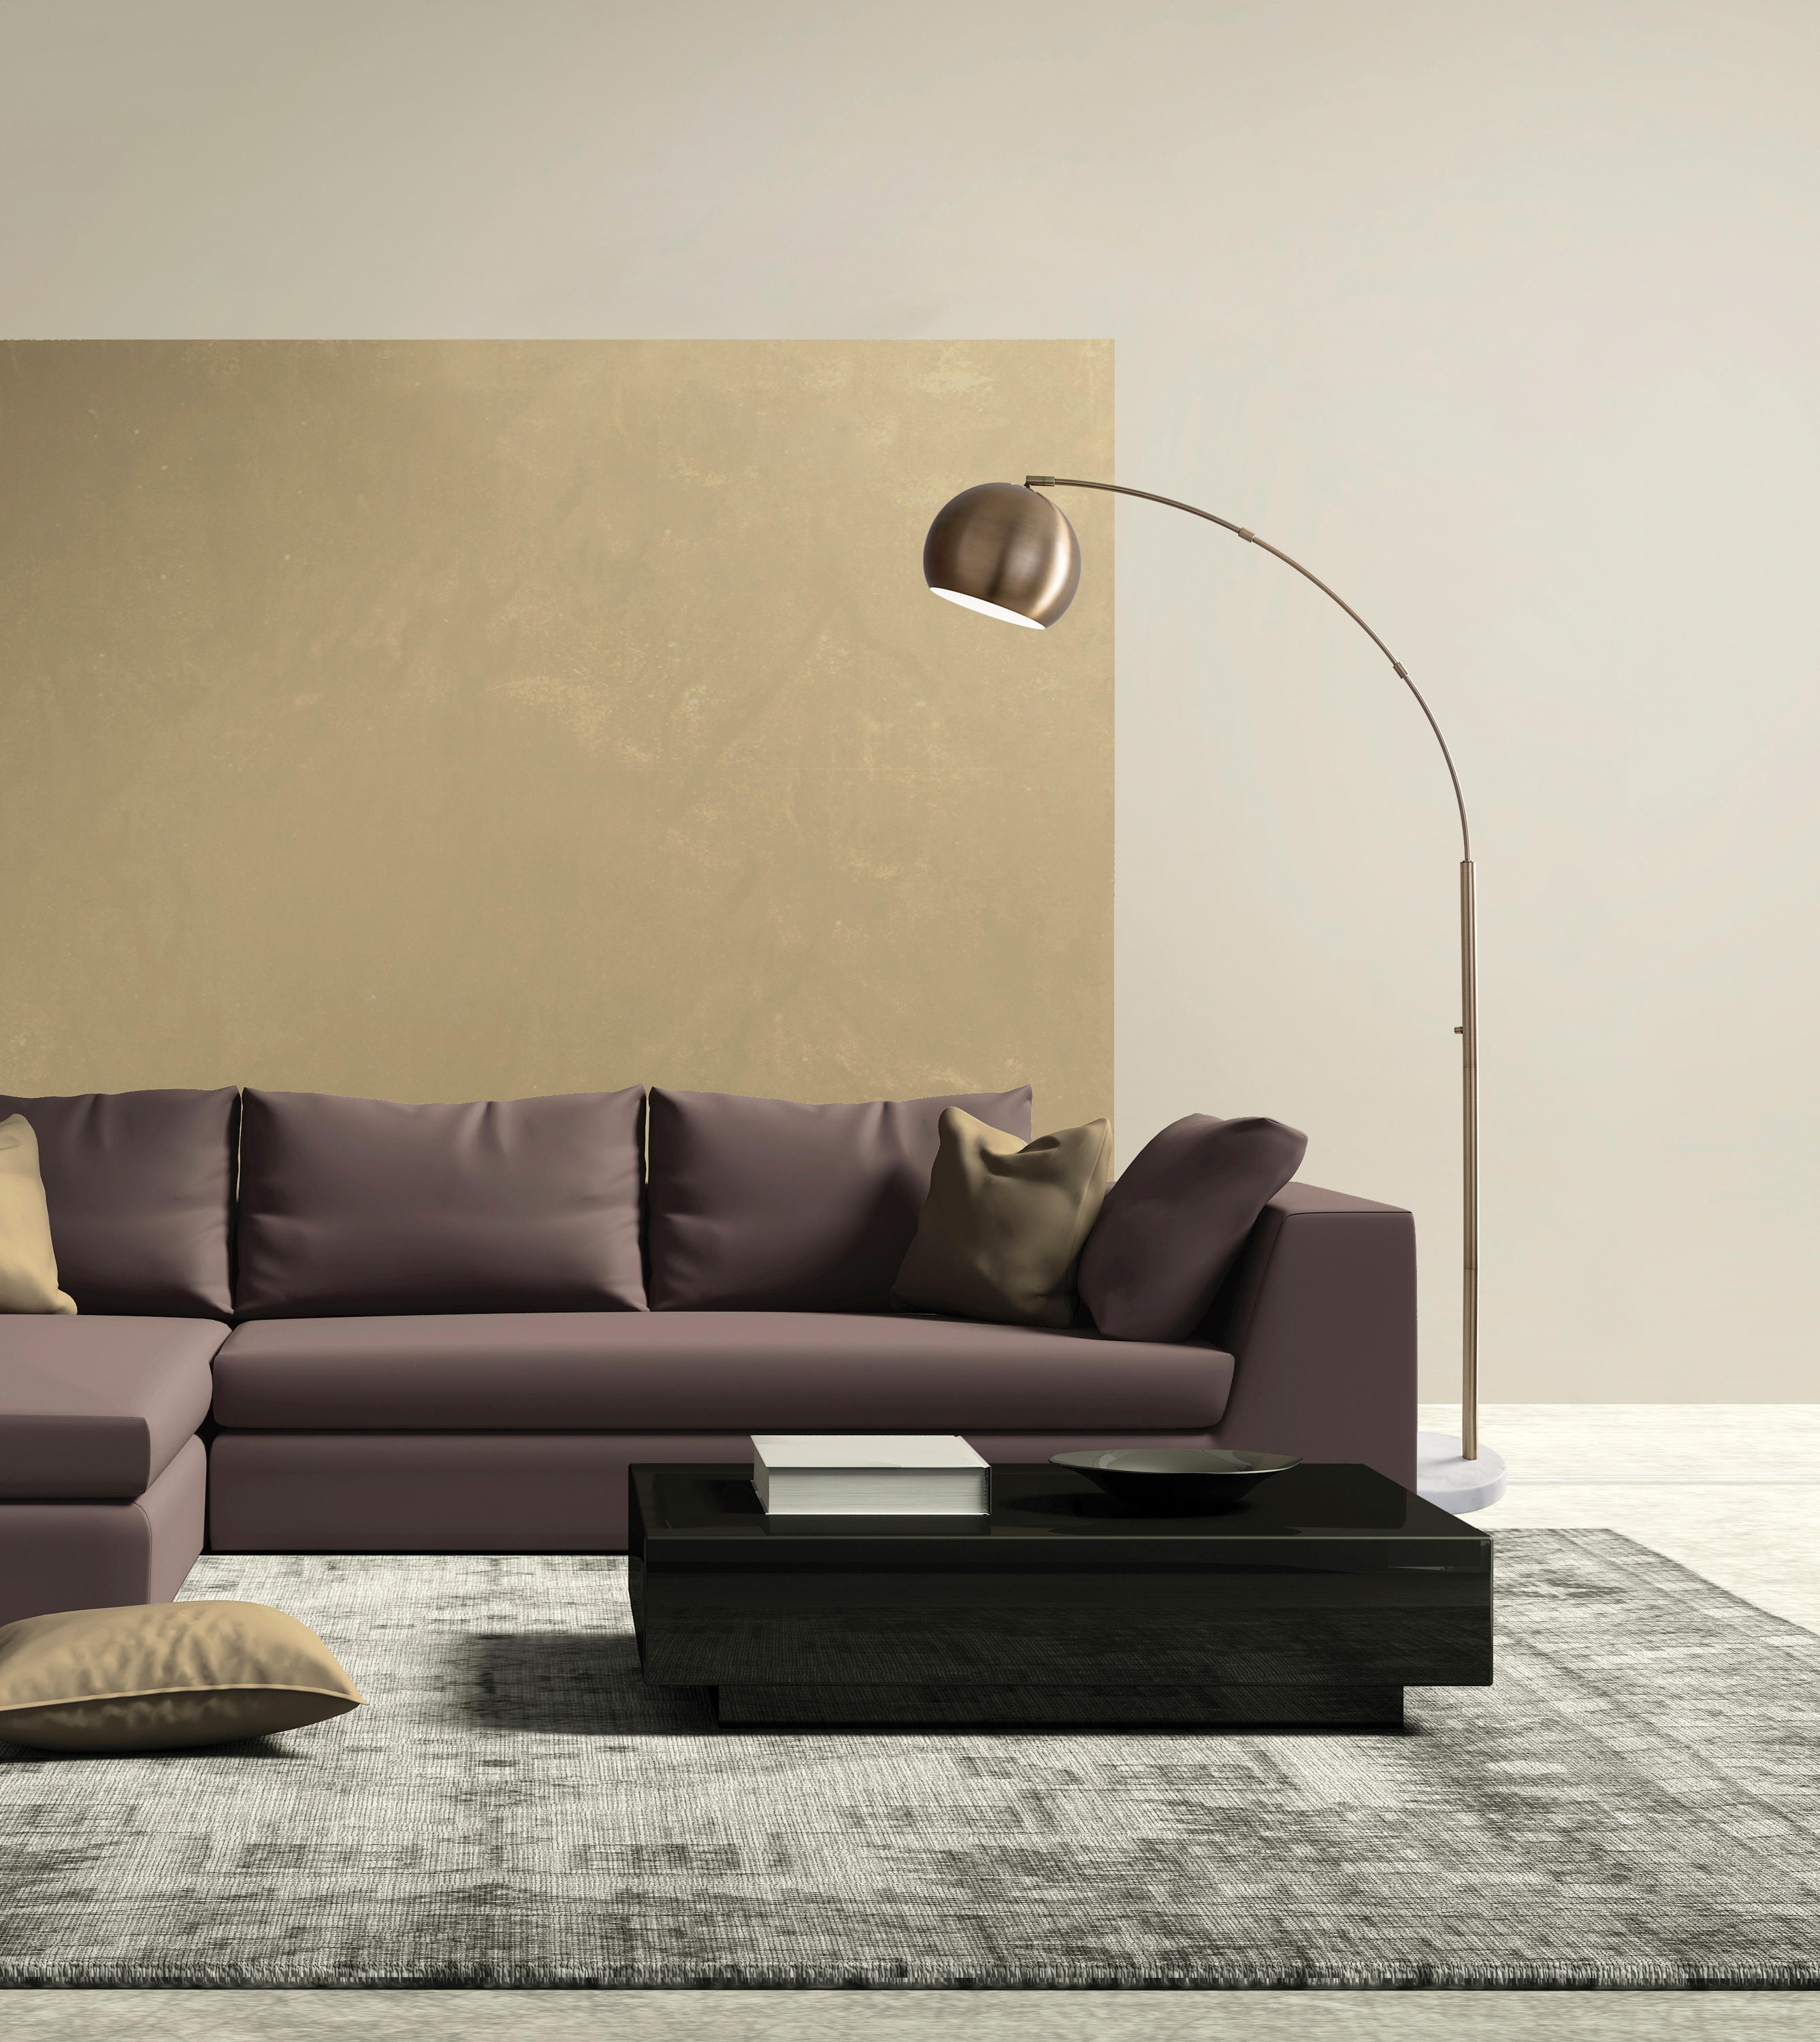 Astoria Arc Lamp By ADS360